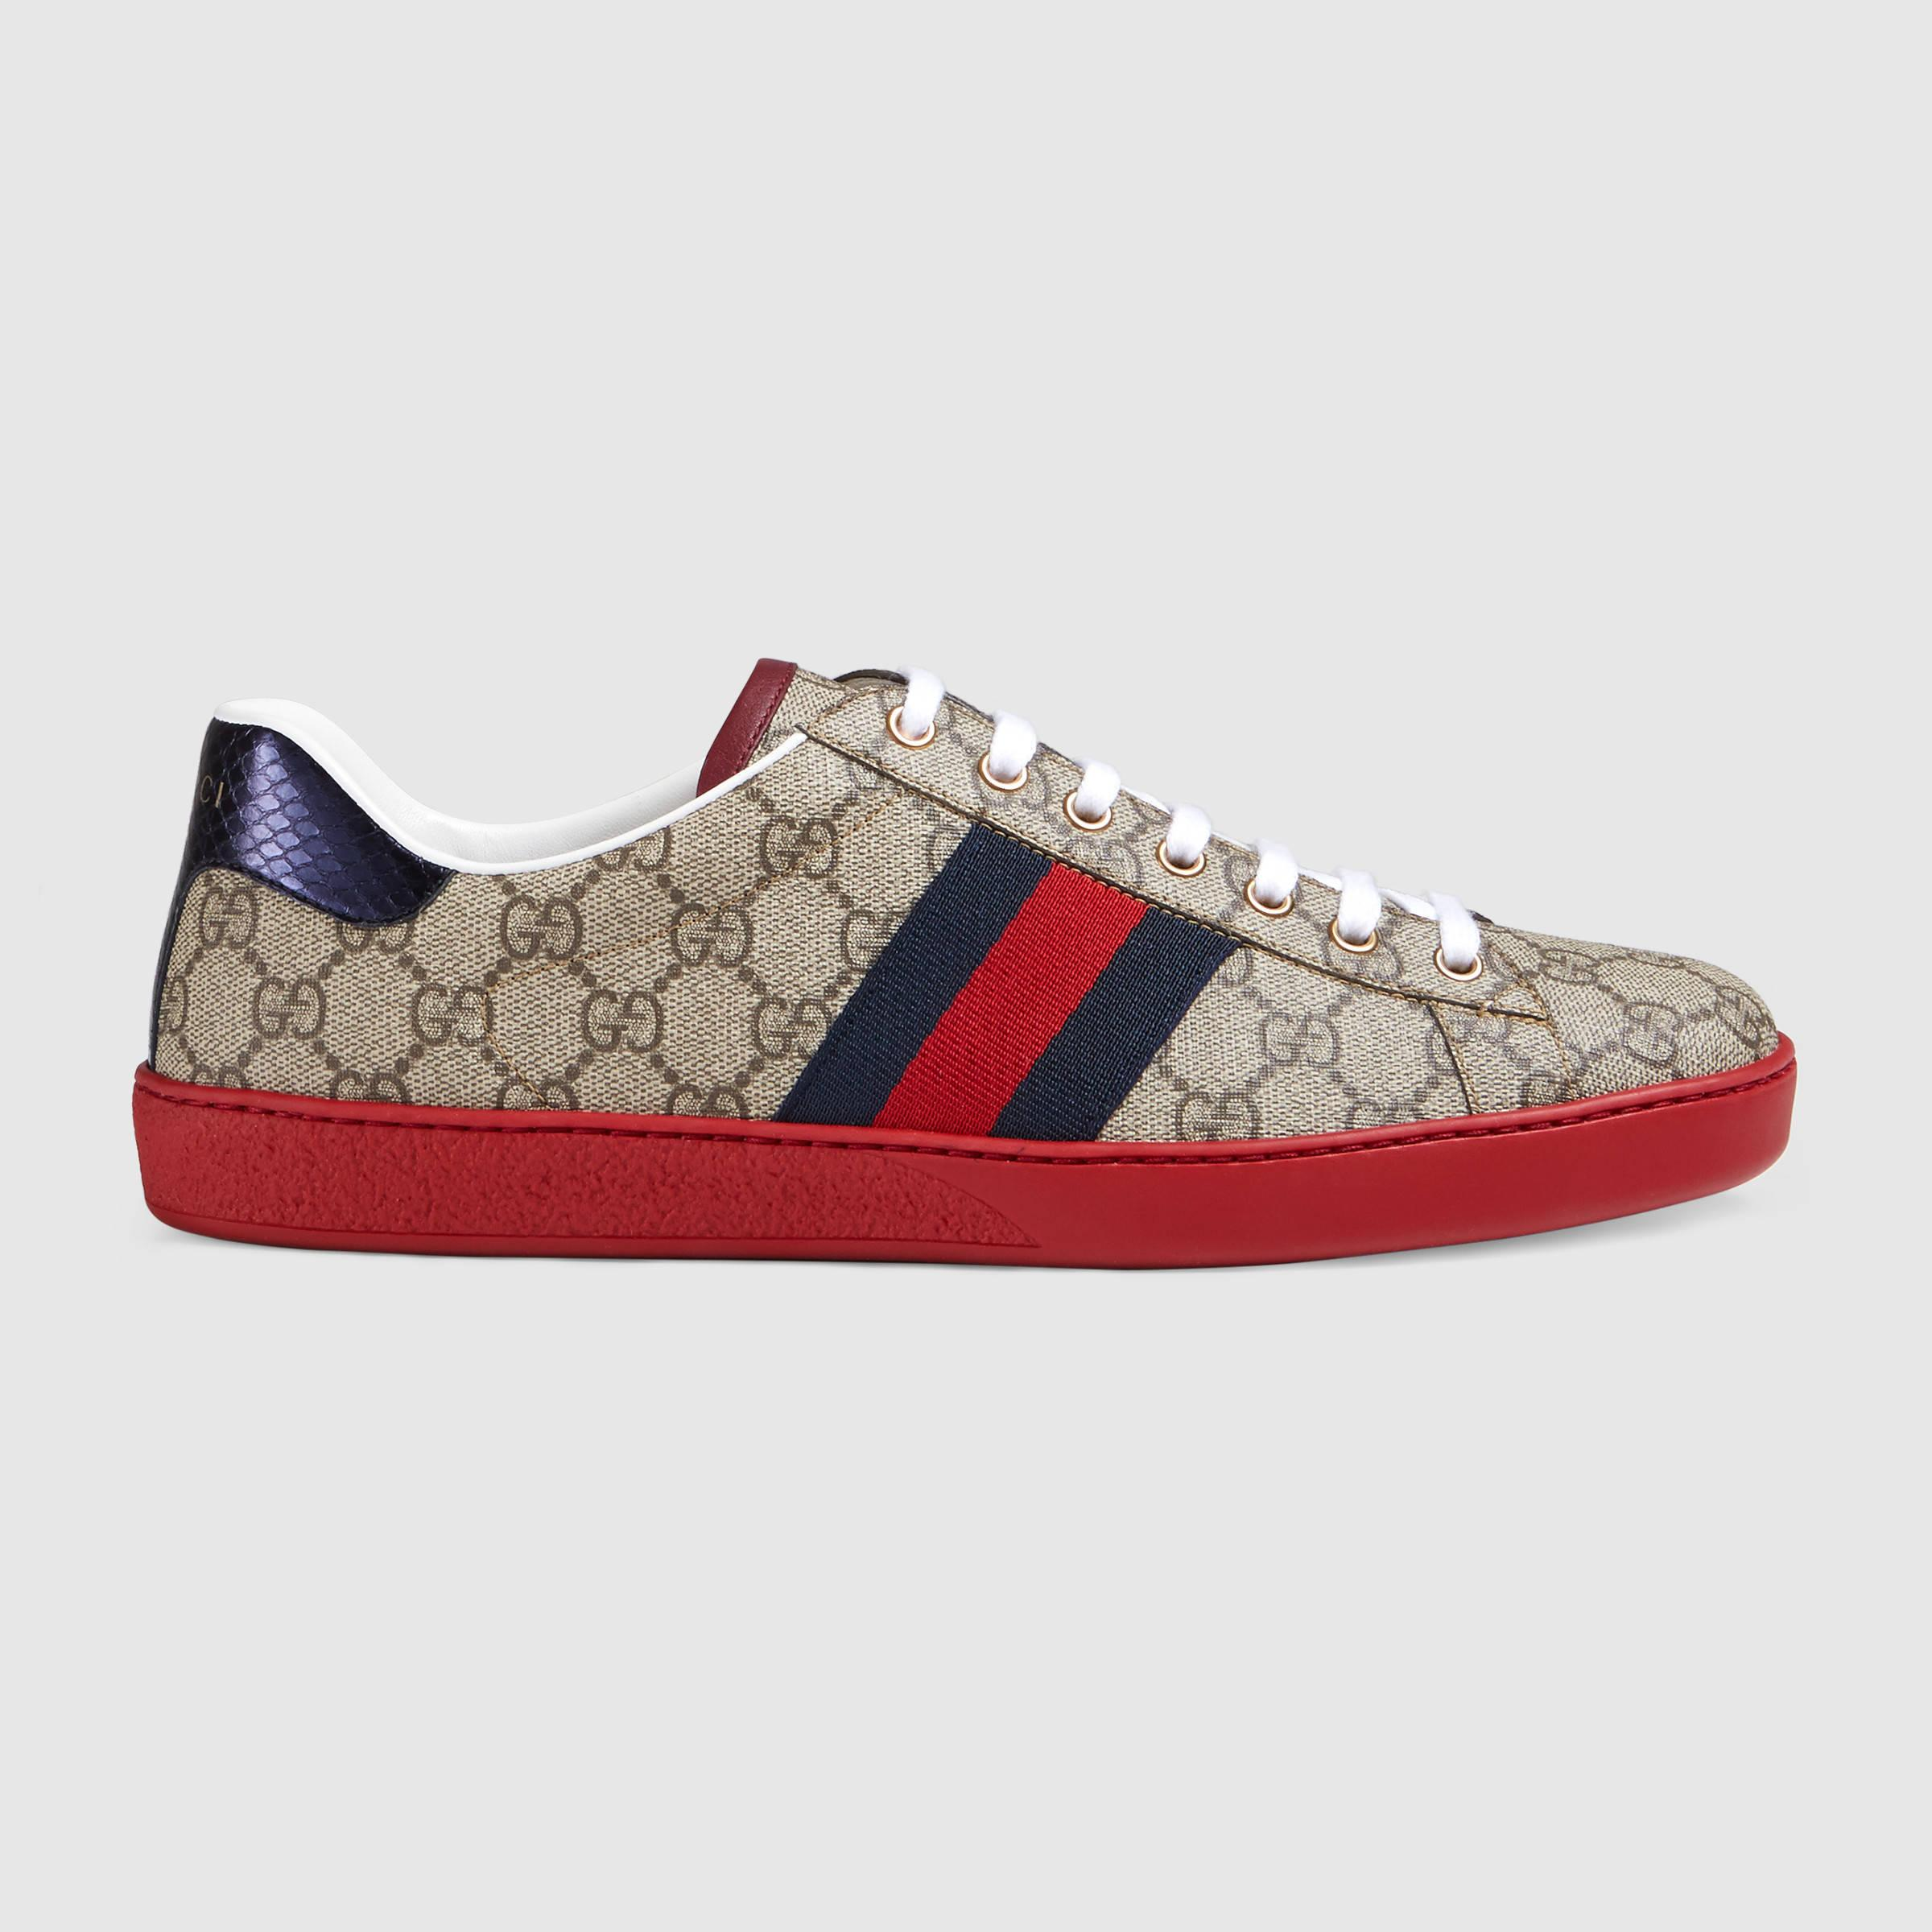 gucci ace gg supreme lowtop sneaker for men lyst